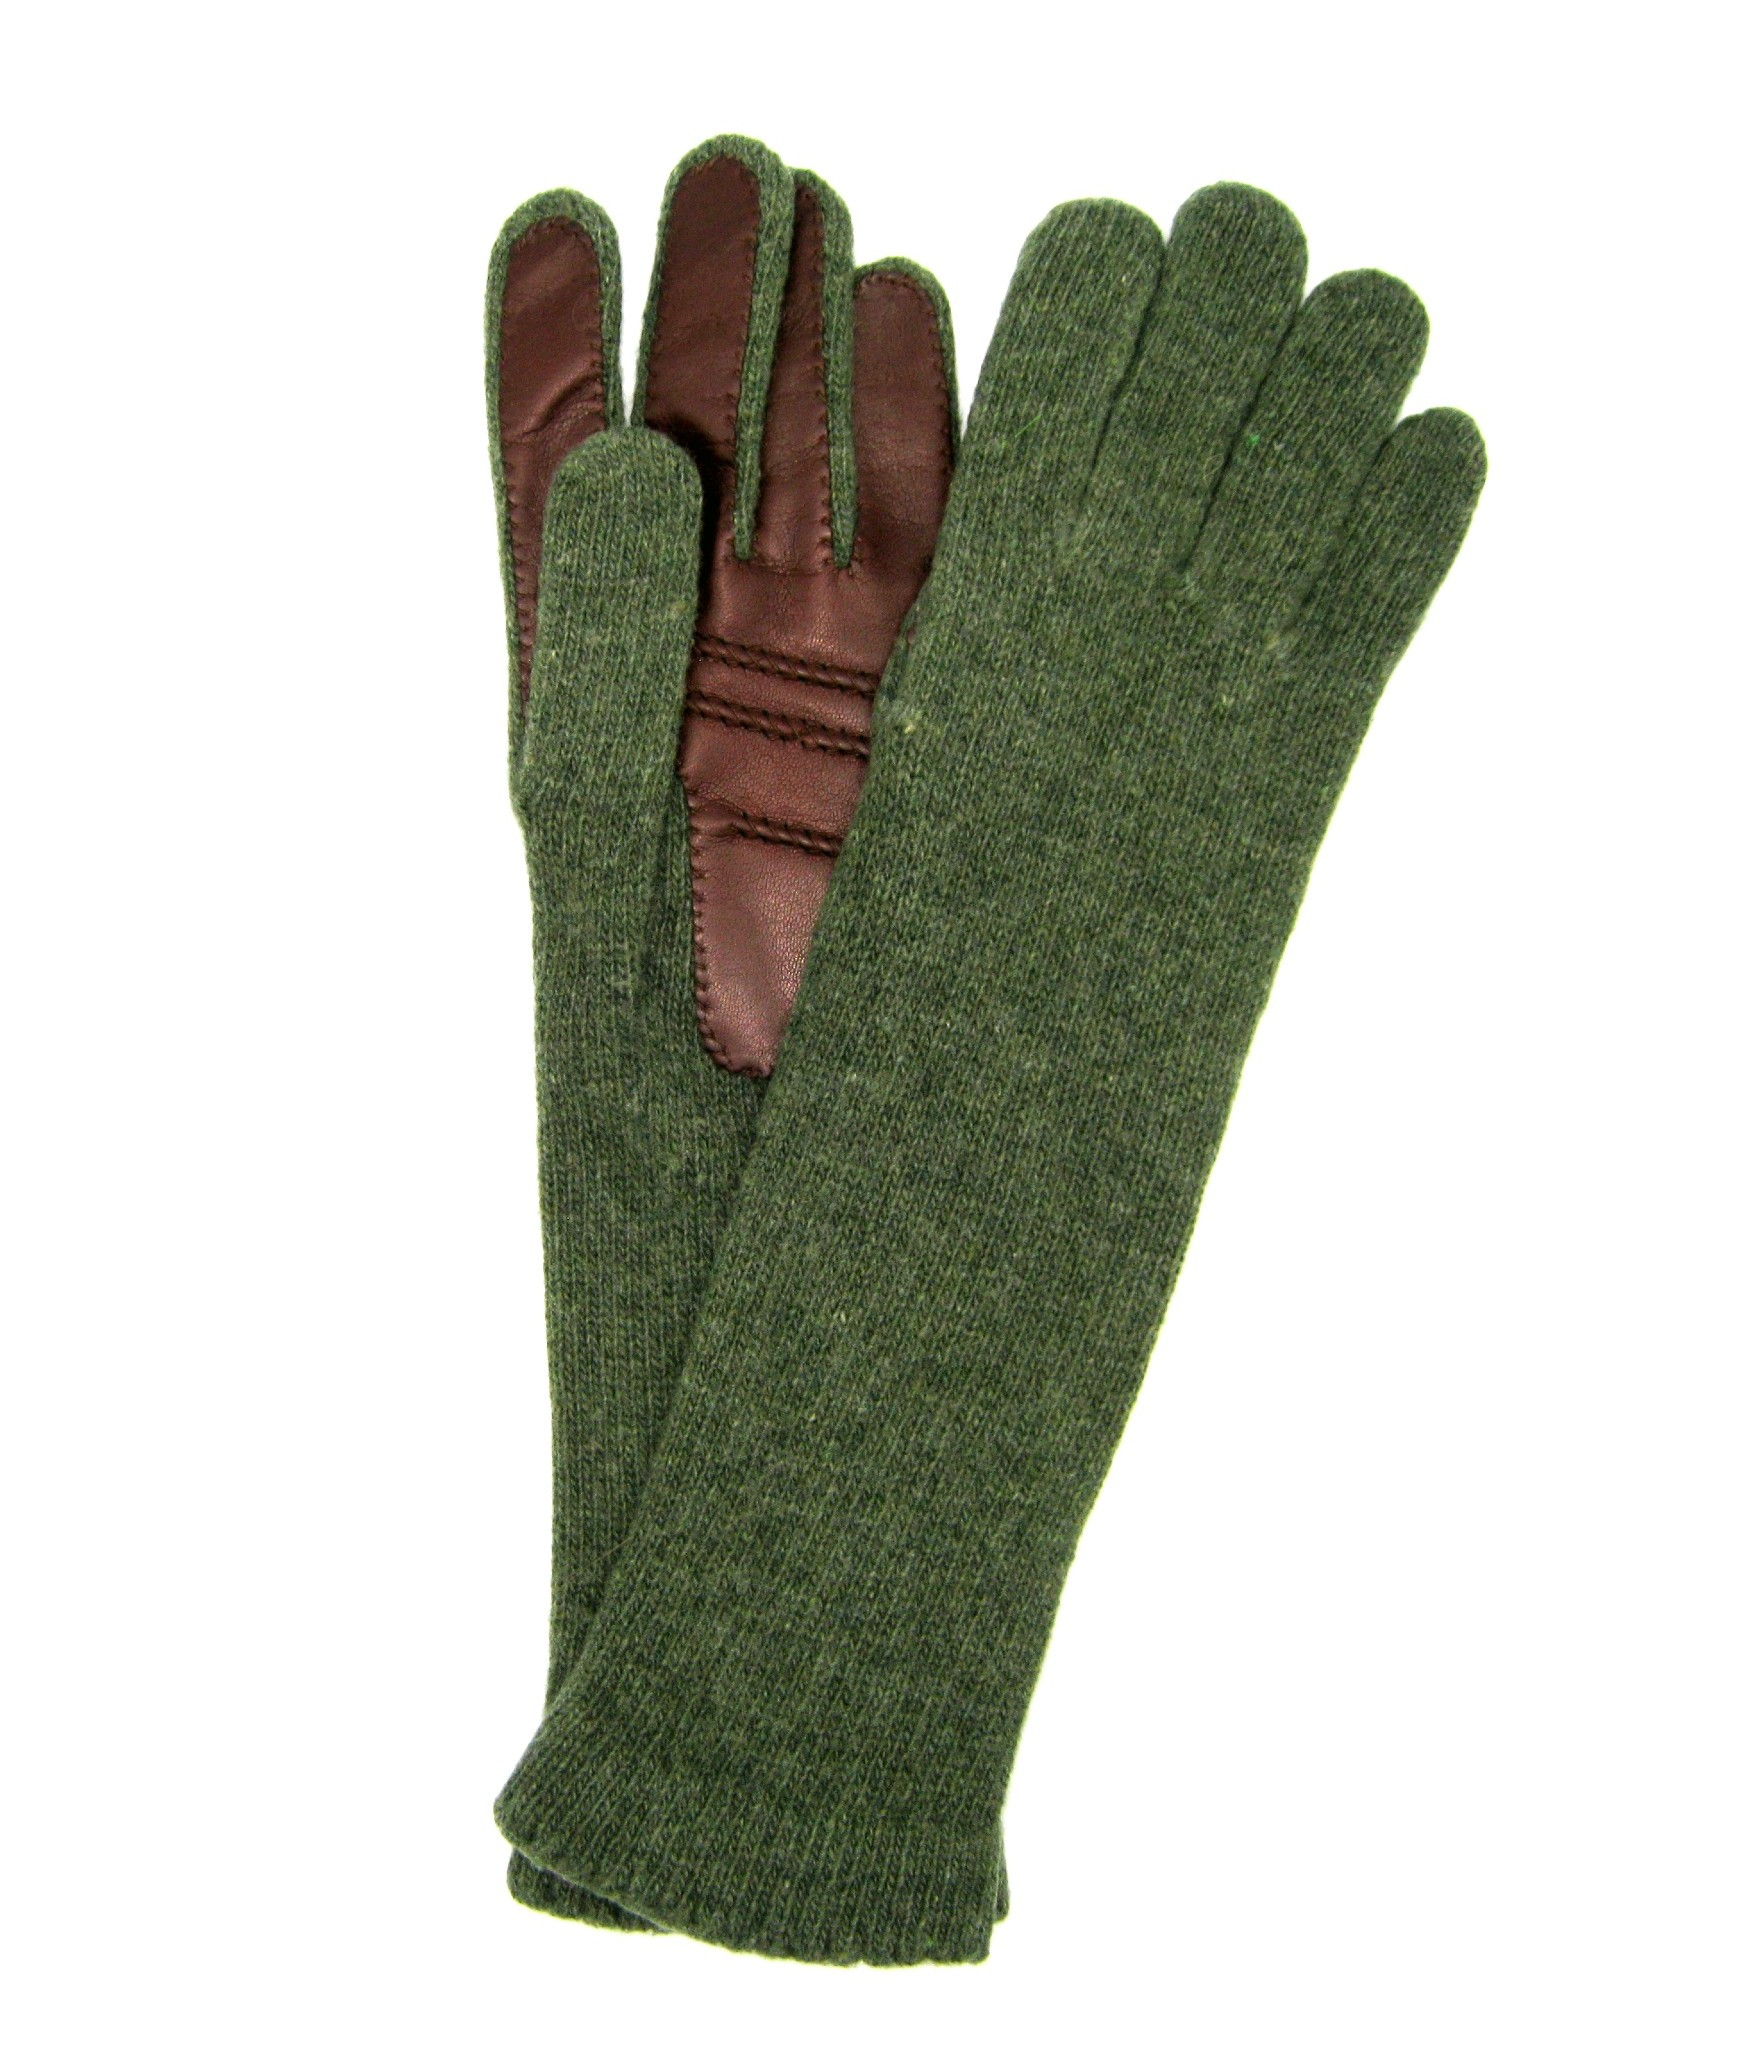 100%cashmere gloves 4BT with Nappa leather palm Olive green/Tan